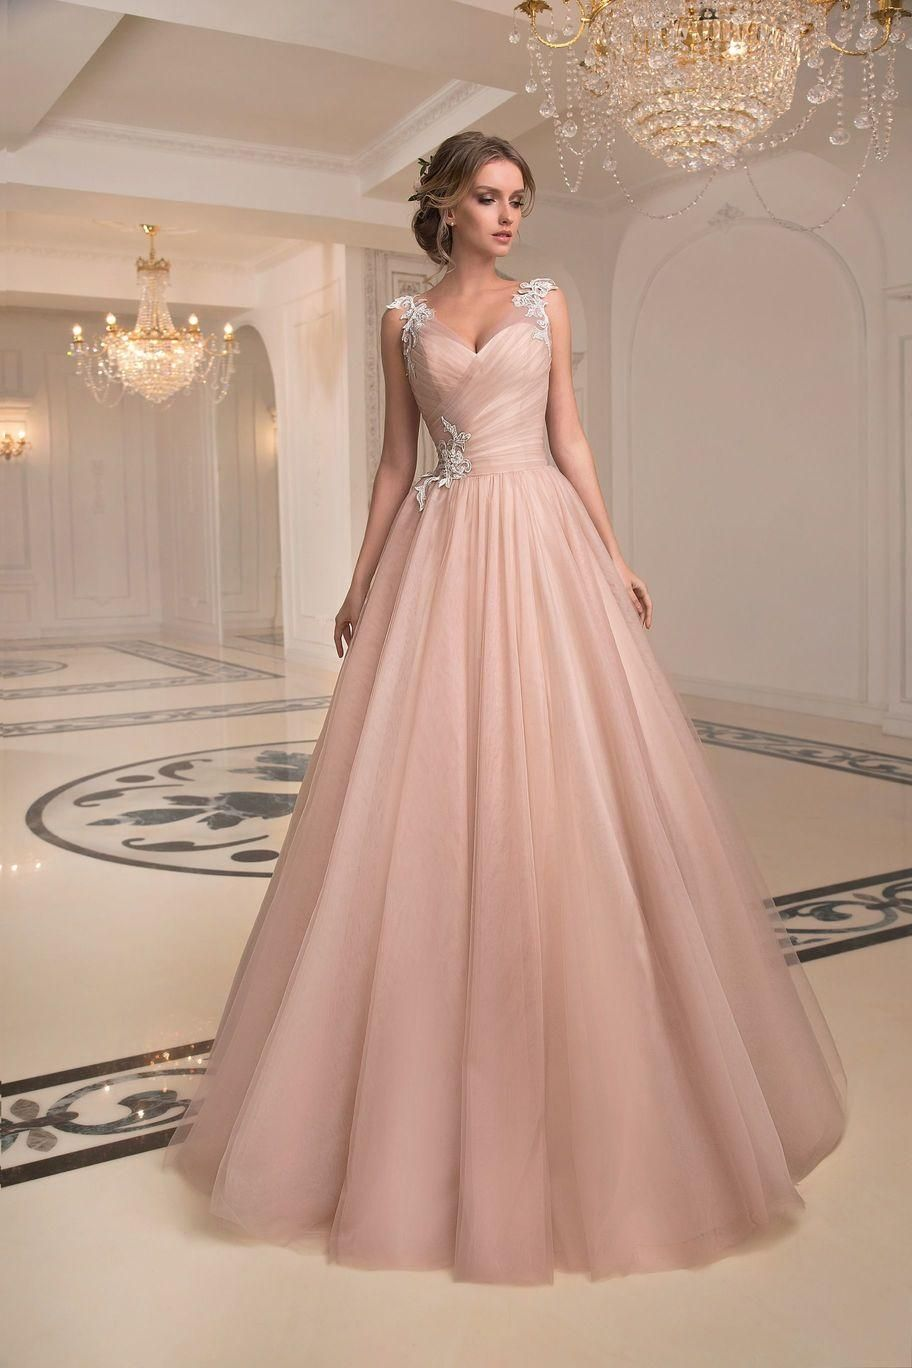 Pin by andreia rios on linda pinterest pink gowns gowns and prom